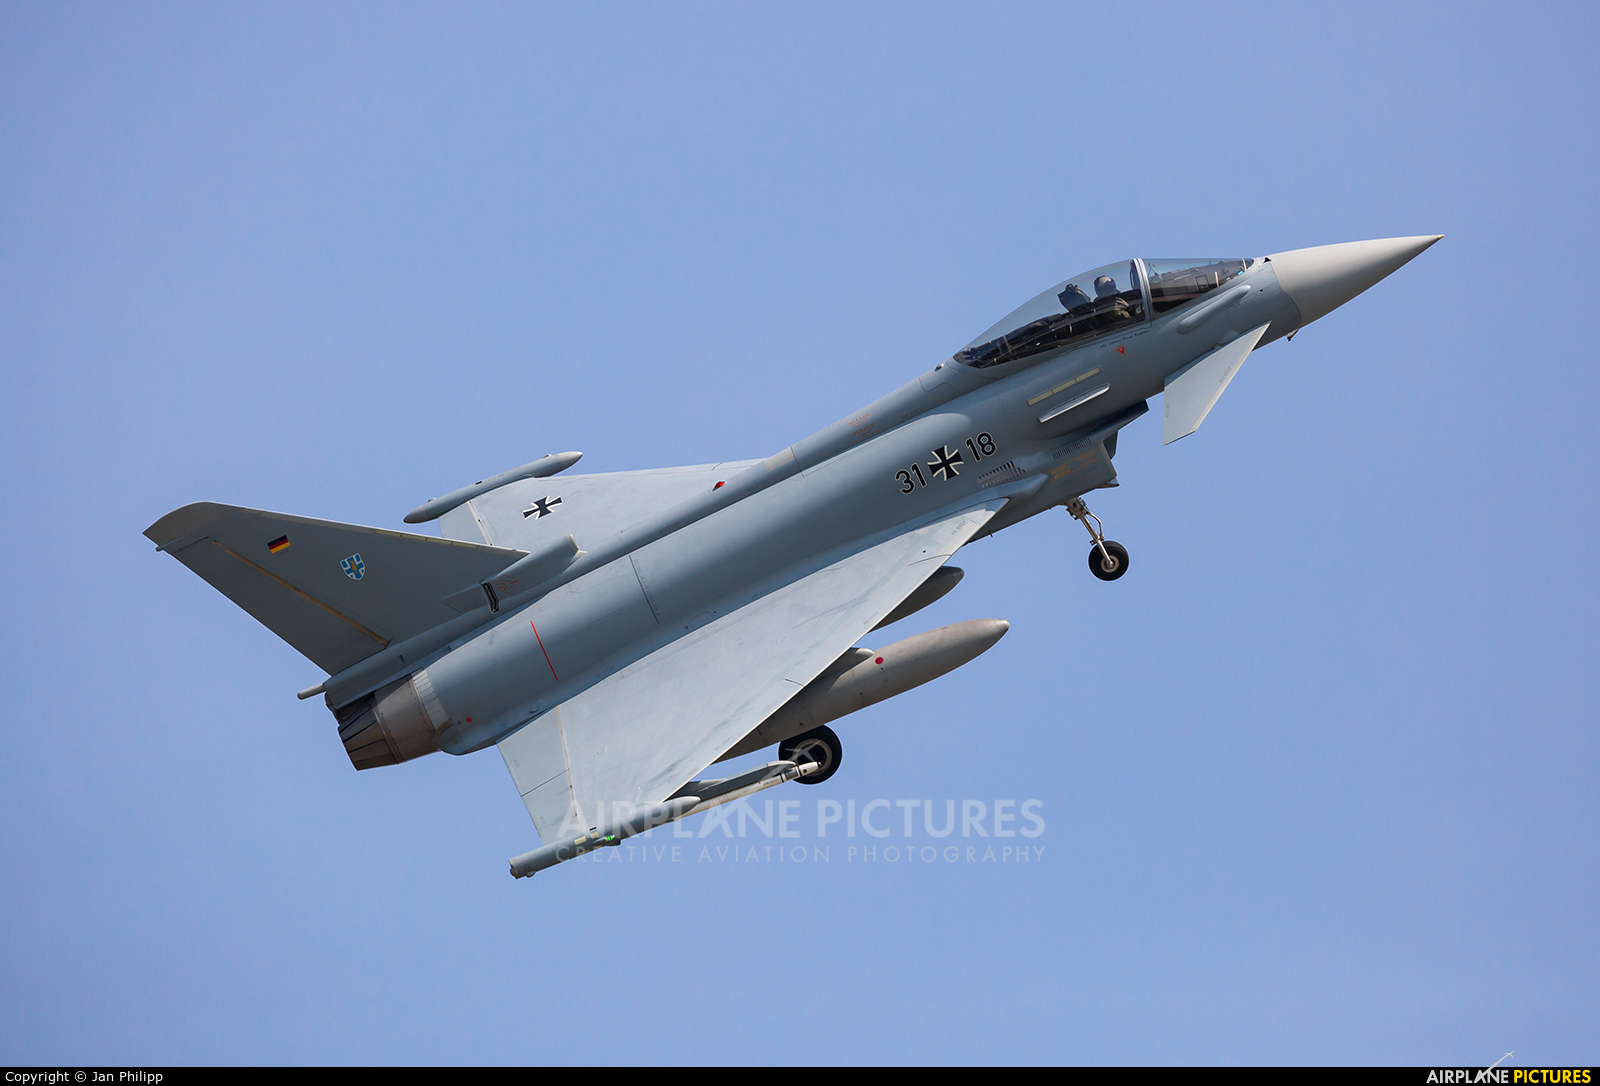 Germany - Air Force 31+18 aircraft at Rostock - Laage